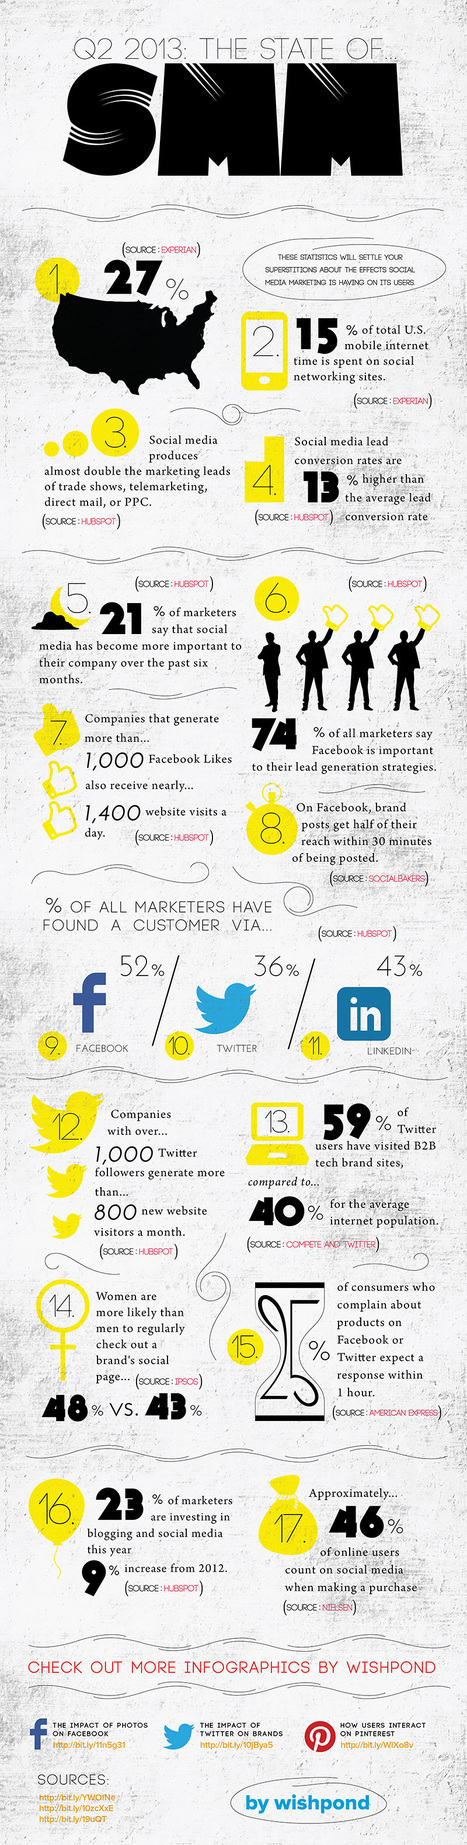 17 Incredible Social Media Marketing Statistics [INFOGRAPHIC] - AllTwitter | SOCIALFAVE - Complete #SMM platform to organize, discover, increase, engage and save time the smartest way. #TOP10 #Twitter platforms | Scoop.it